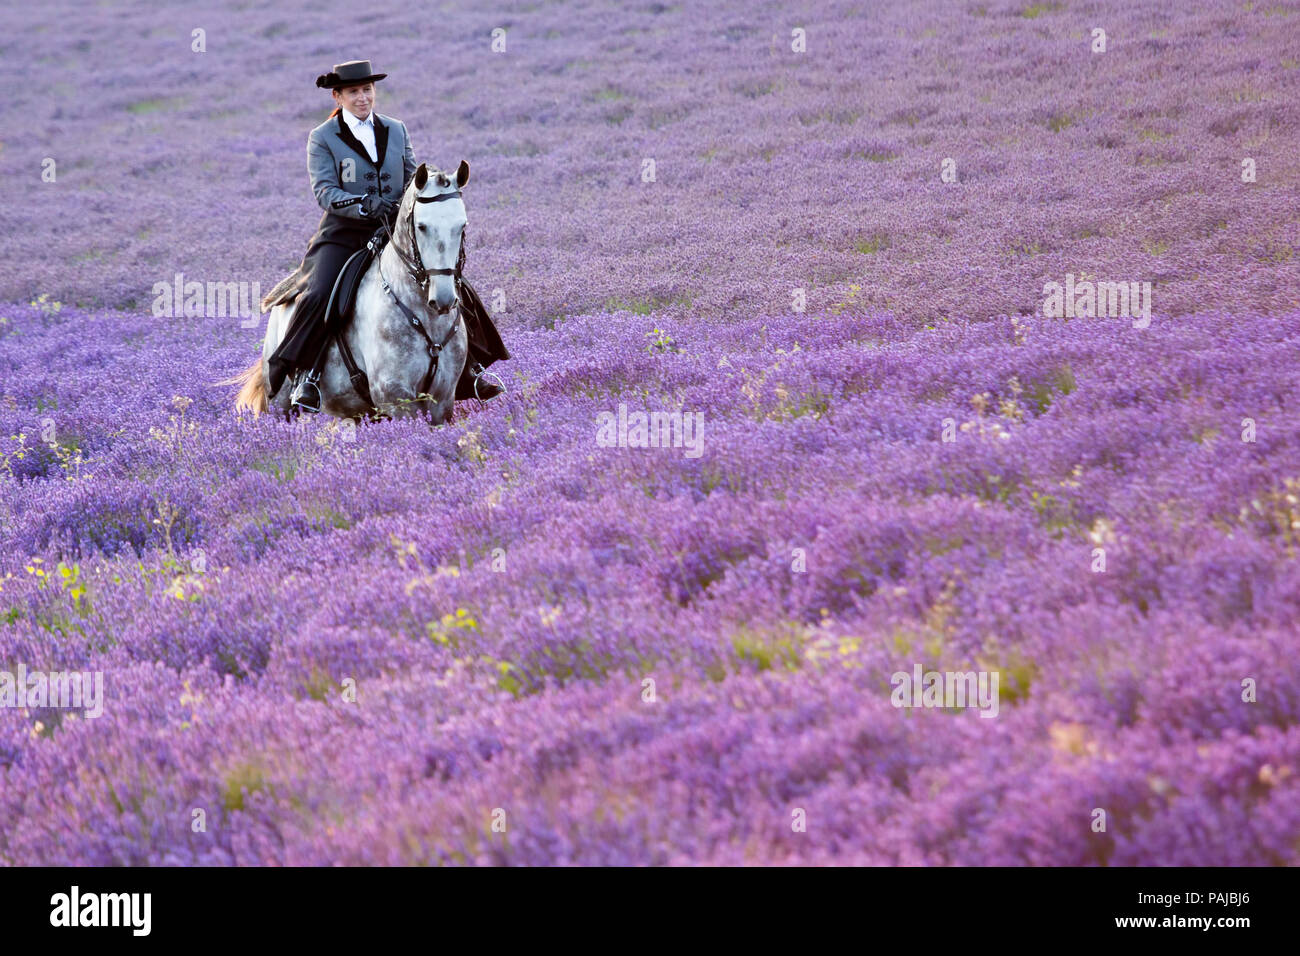 Woman wearing traditional costume riding an Andalusian horse through a field of lavender at The Hop Farm, Darent Valley, Kent, UK. - Stock Image